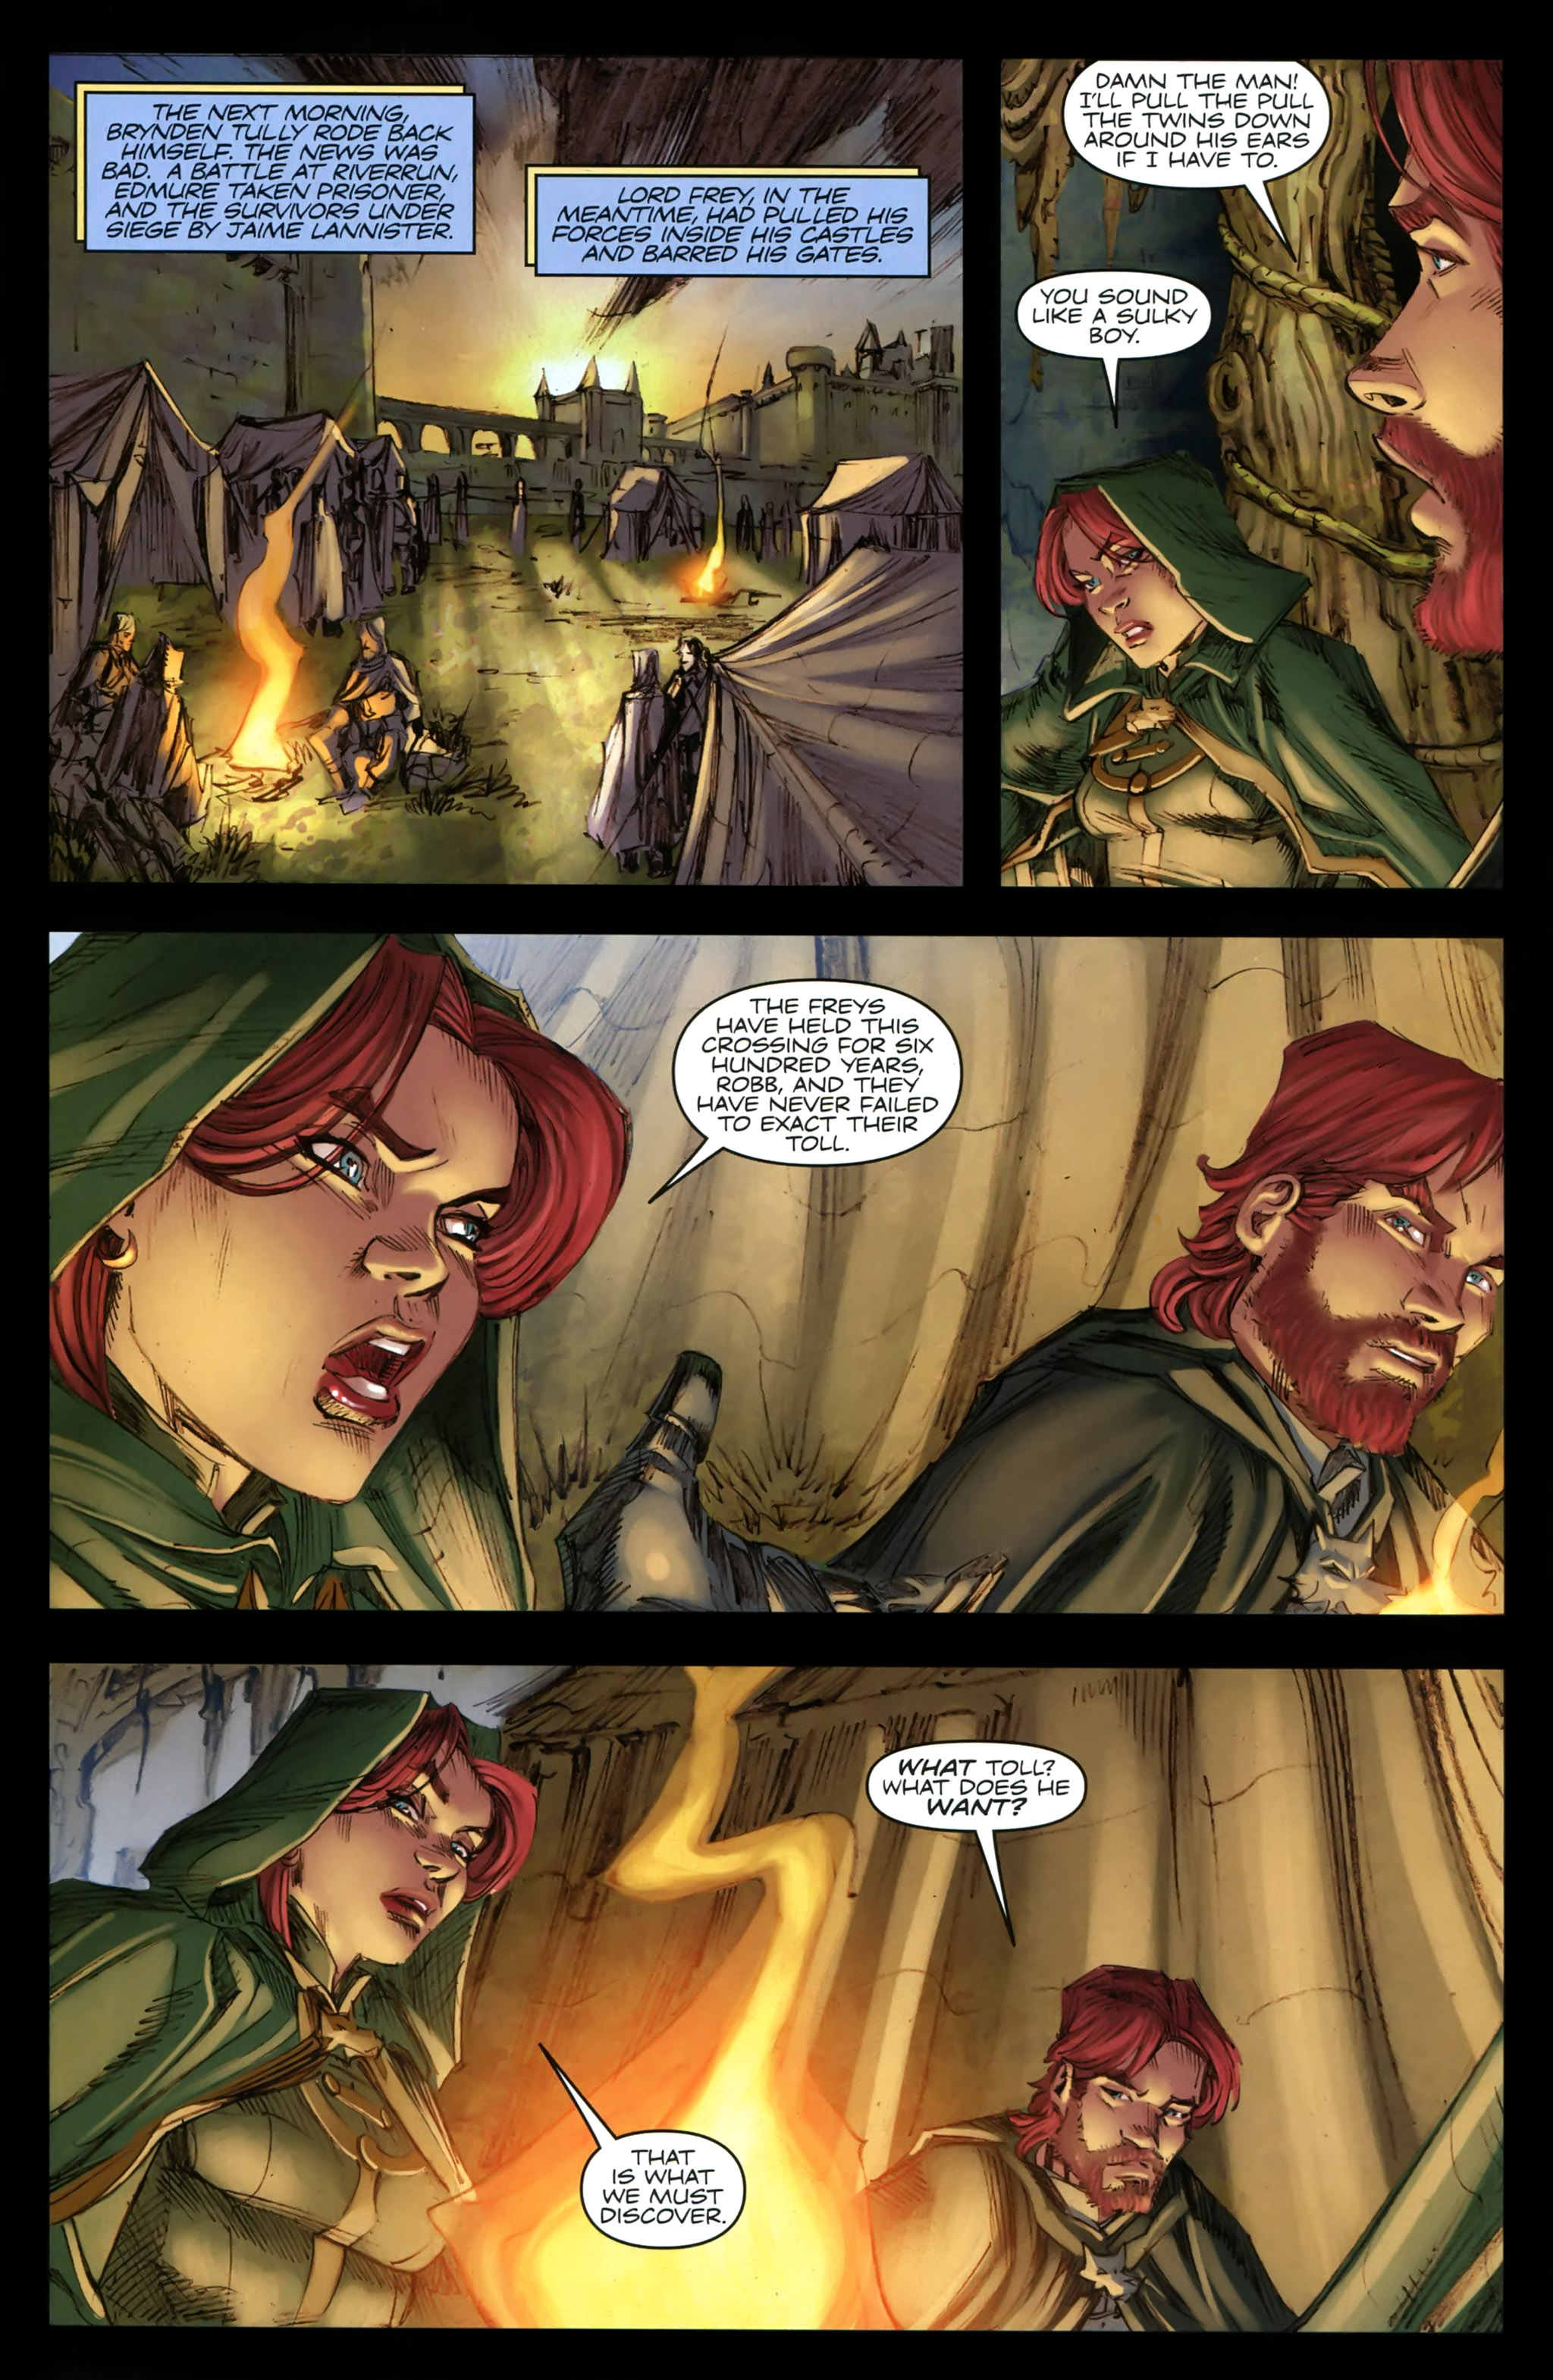 Read online A Game Of Thrones comic -  Issue #19 - 19